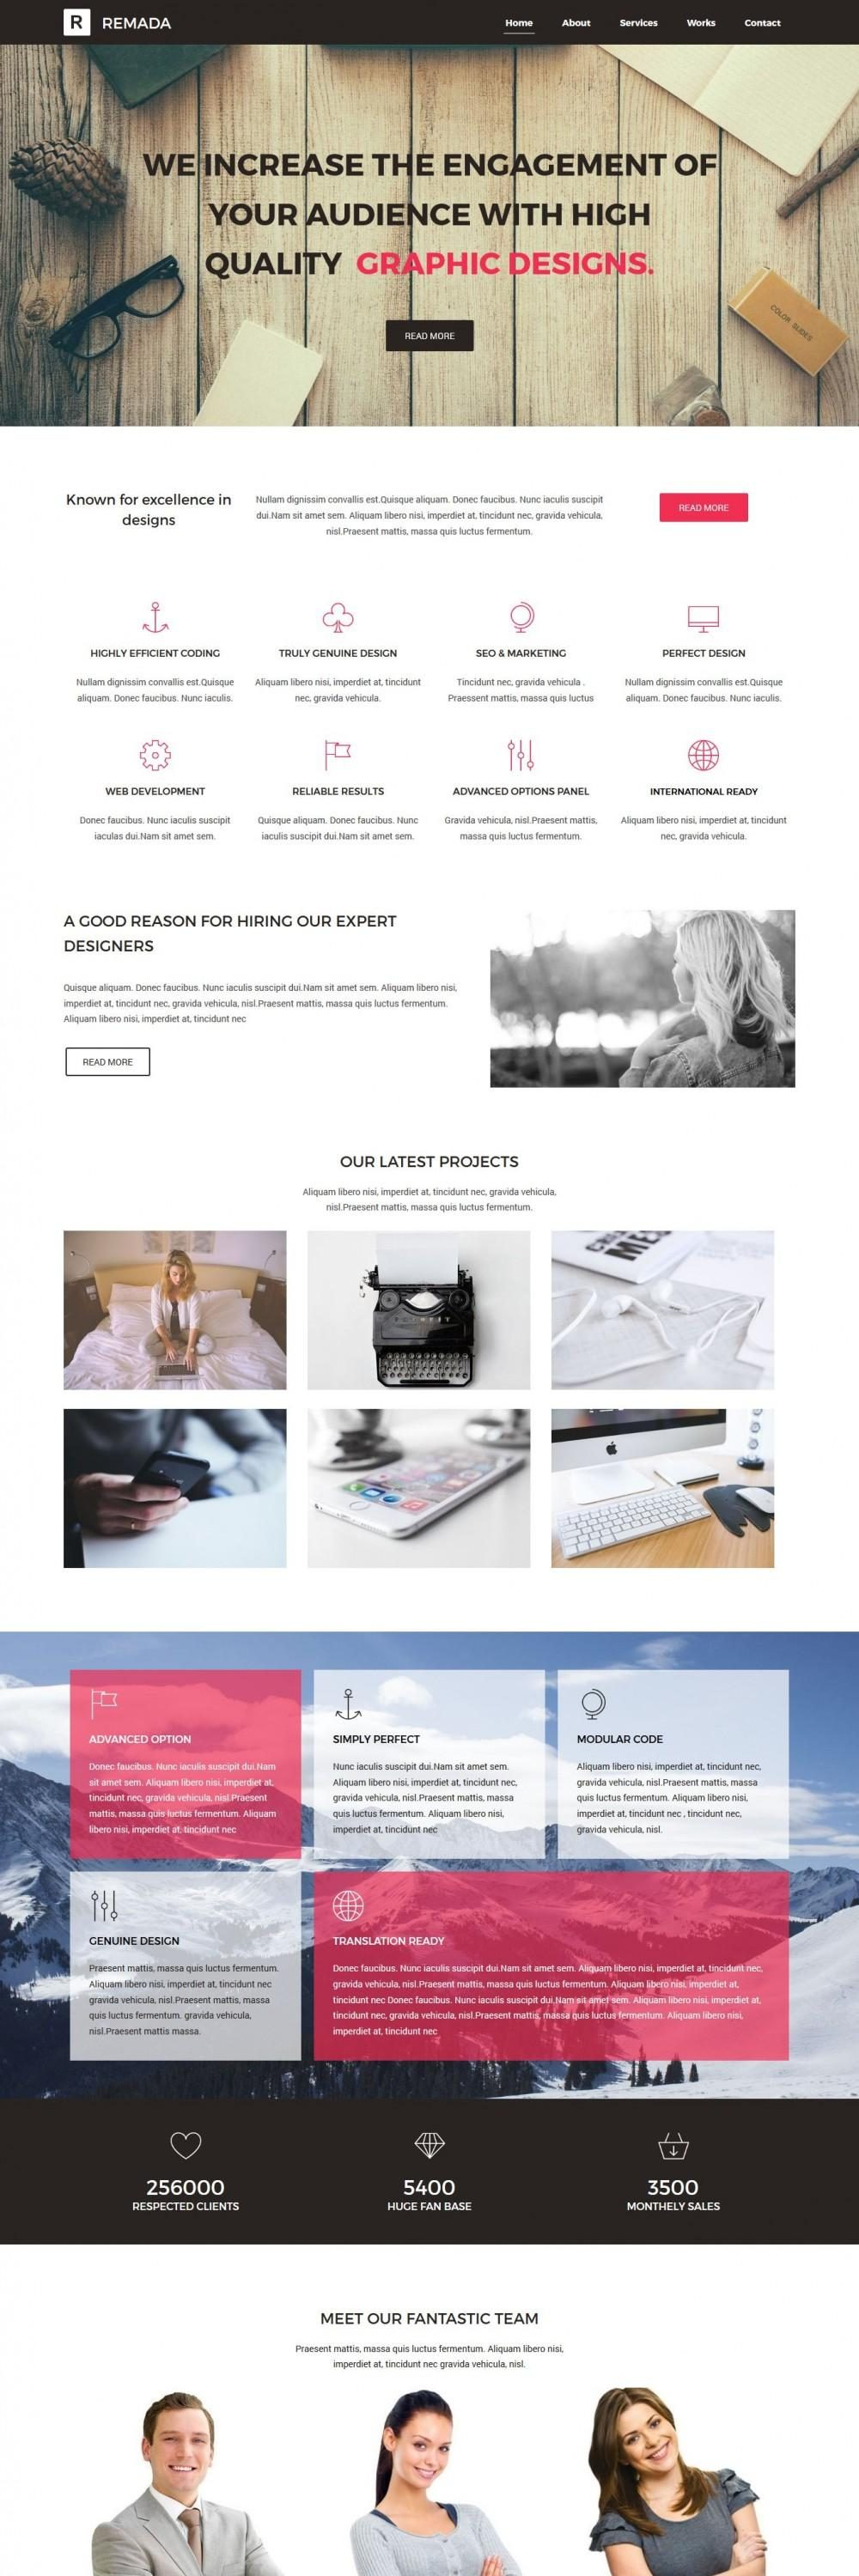 Remada - WordPress Theme For Graphic And Web Design Agency